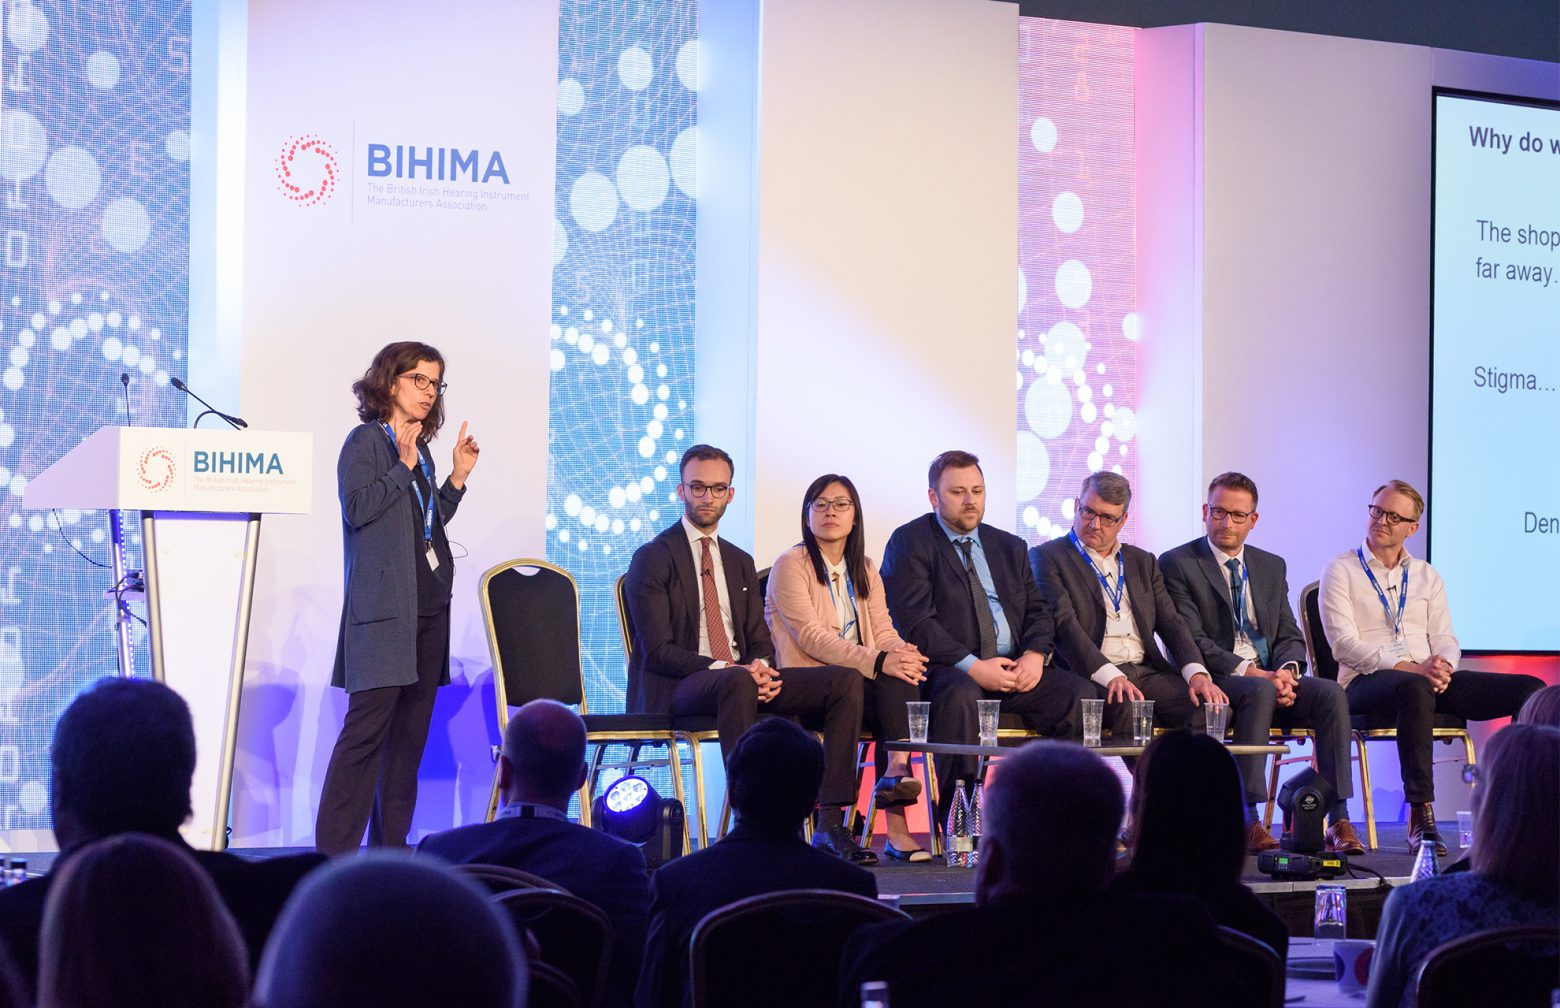 Researchers at the BIHIMA conference